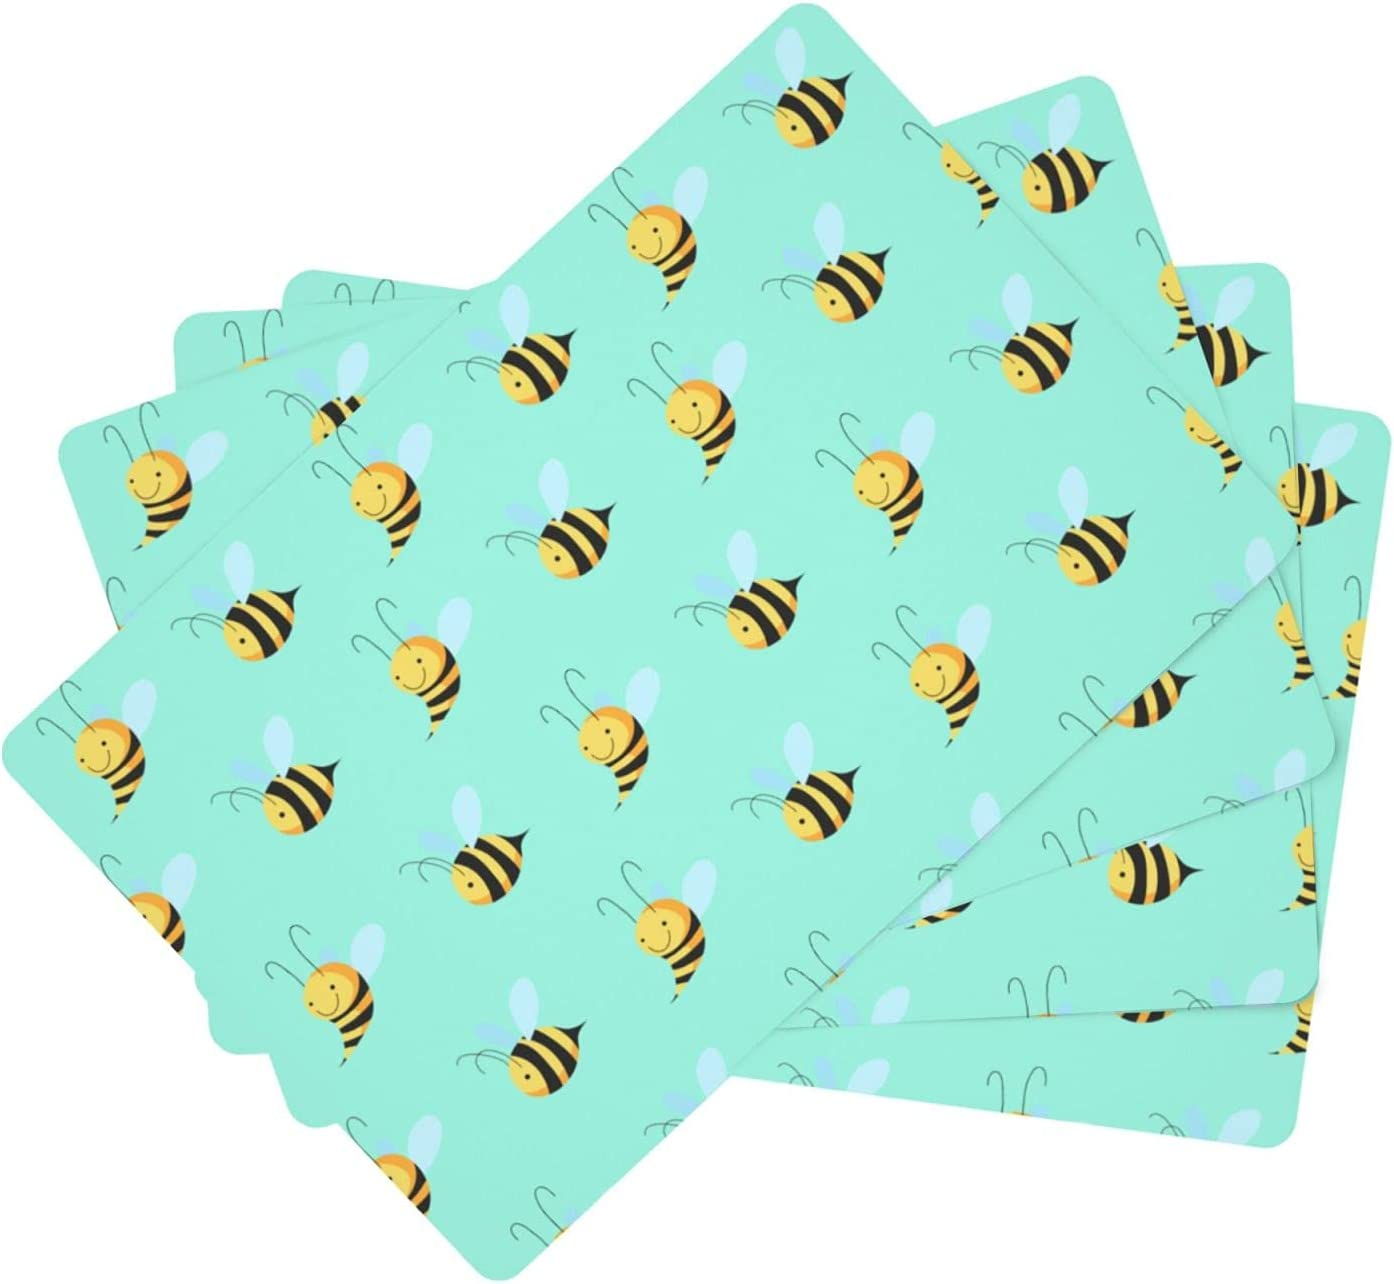 Honey bee Table Mats Washable OFFicial site Selling rankings Set 4 of F Resistant Non-Slip Heat